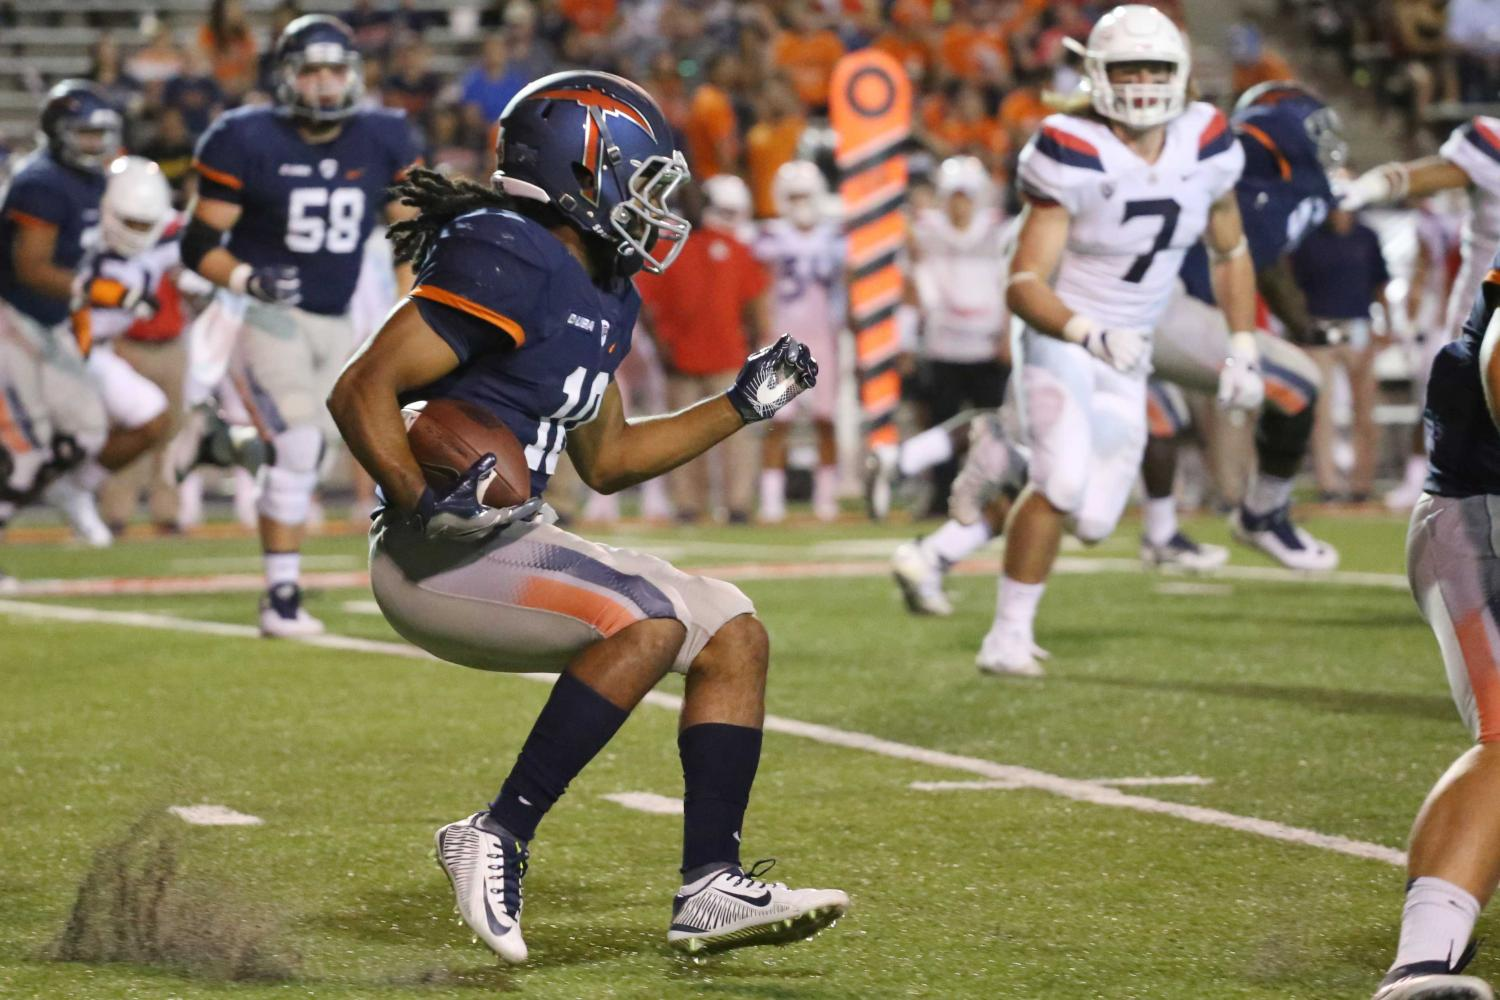 Miners+still+winless+after+loss+to+Army